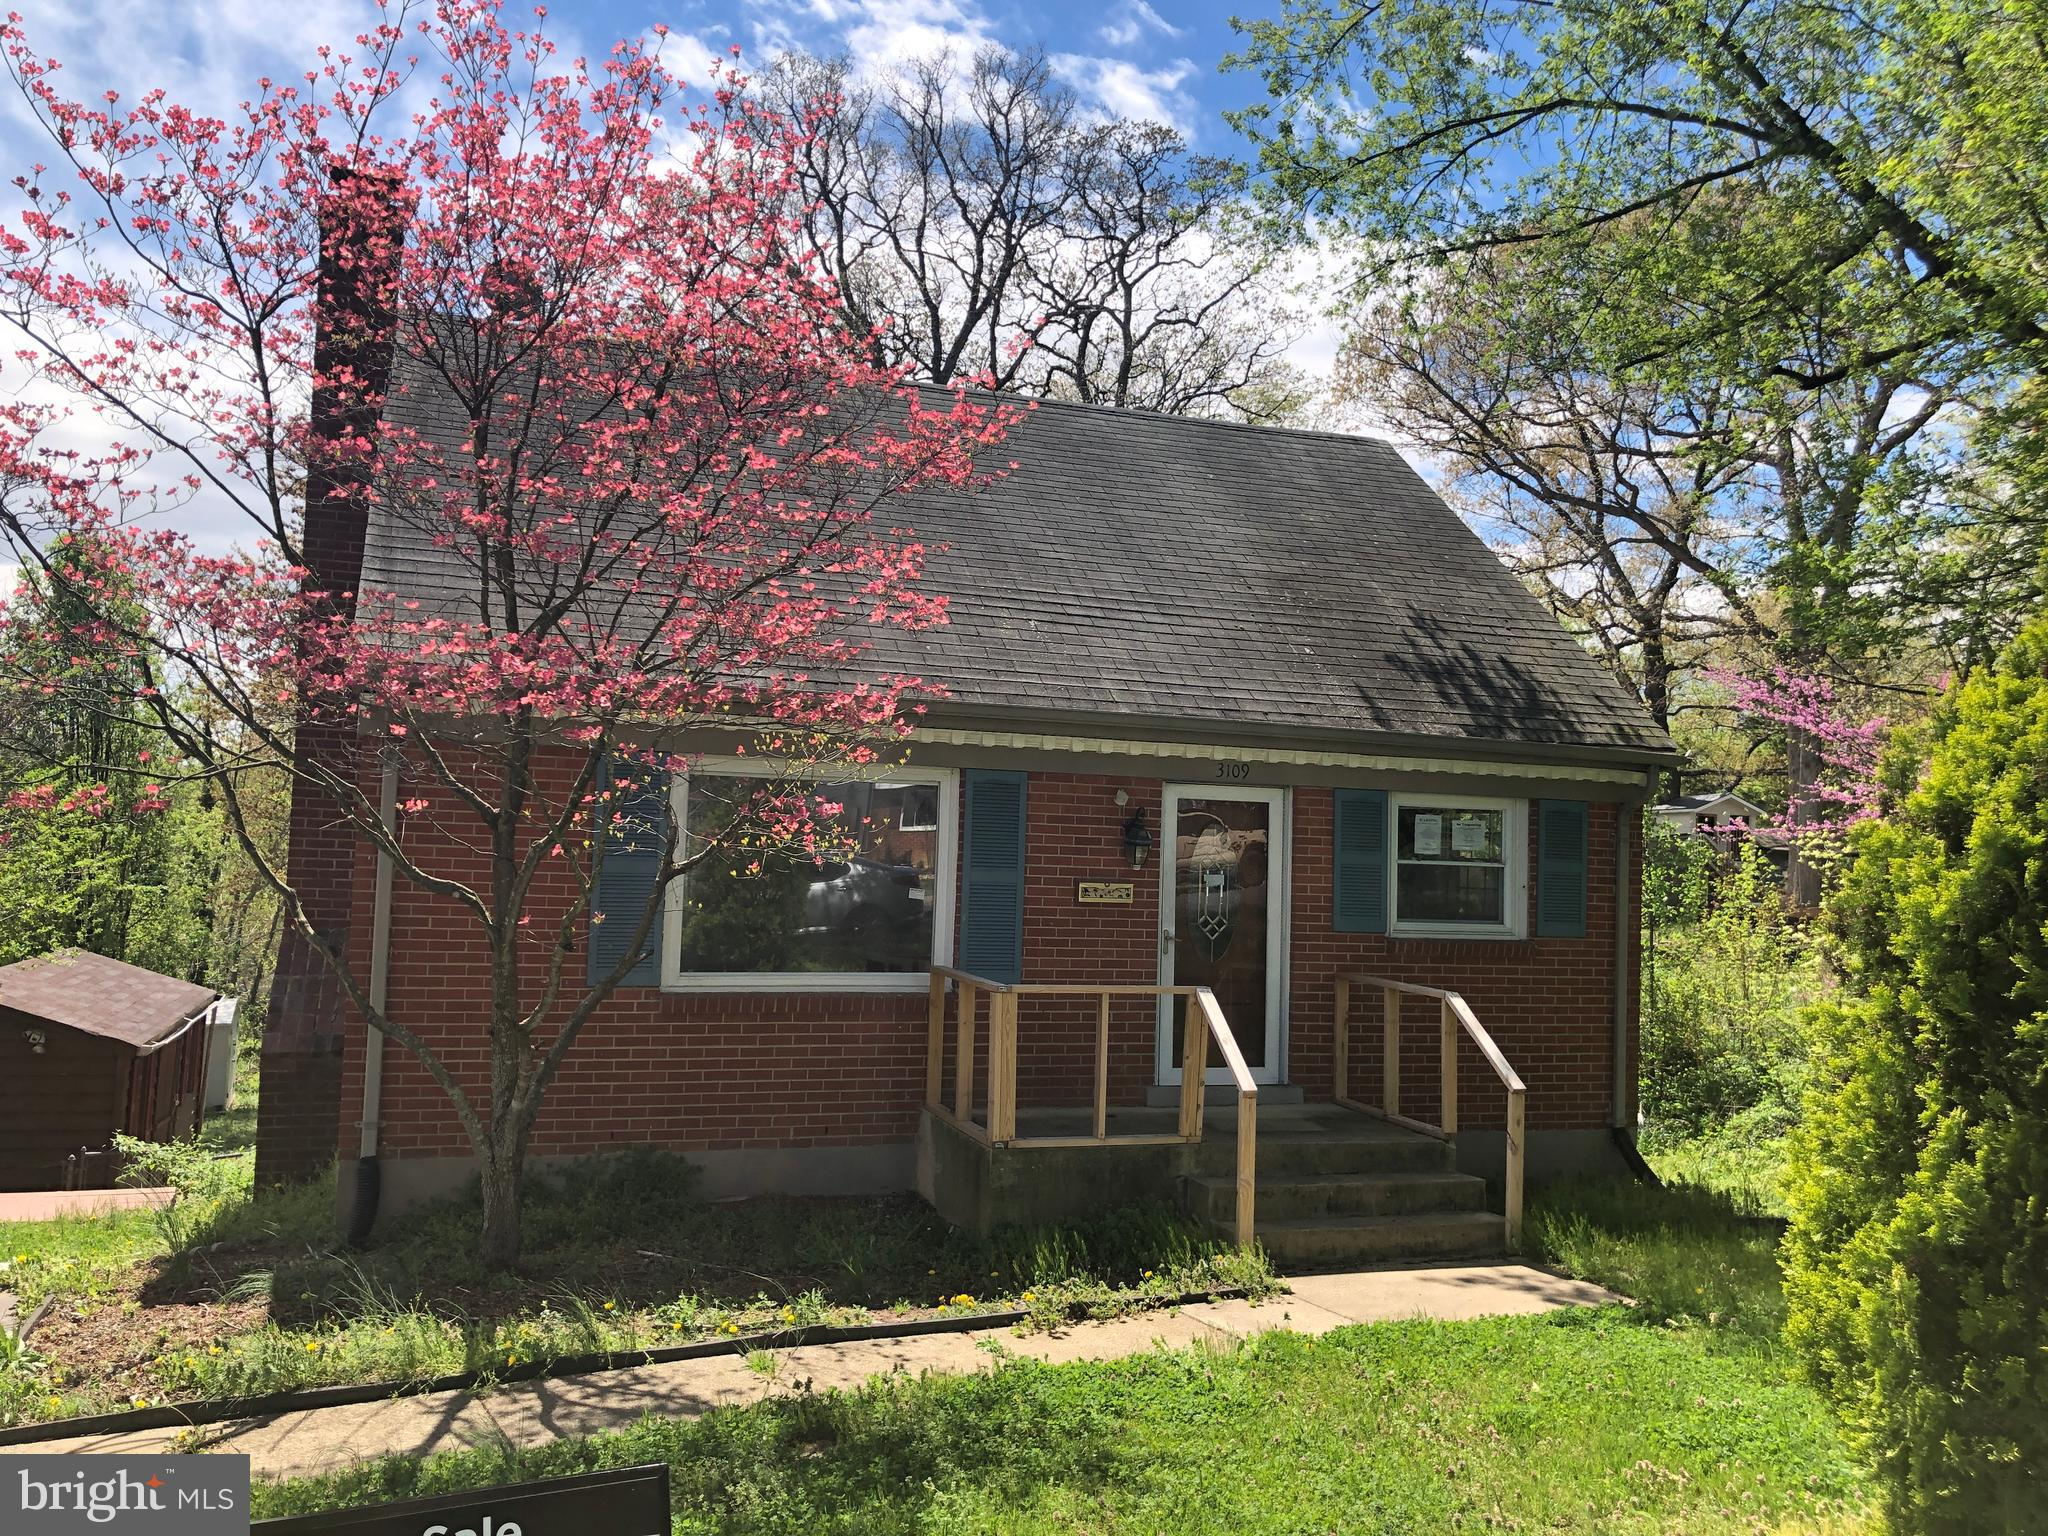 SOLD STRICTLY AS-IS. Great Opportunity to Own This Cape Cod. Fireplace, Wood Flooring, Tiered Deck, Shed, Close to I-95, Shopping, VRE.